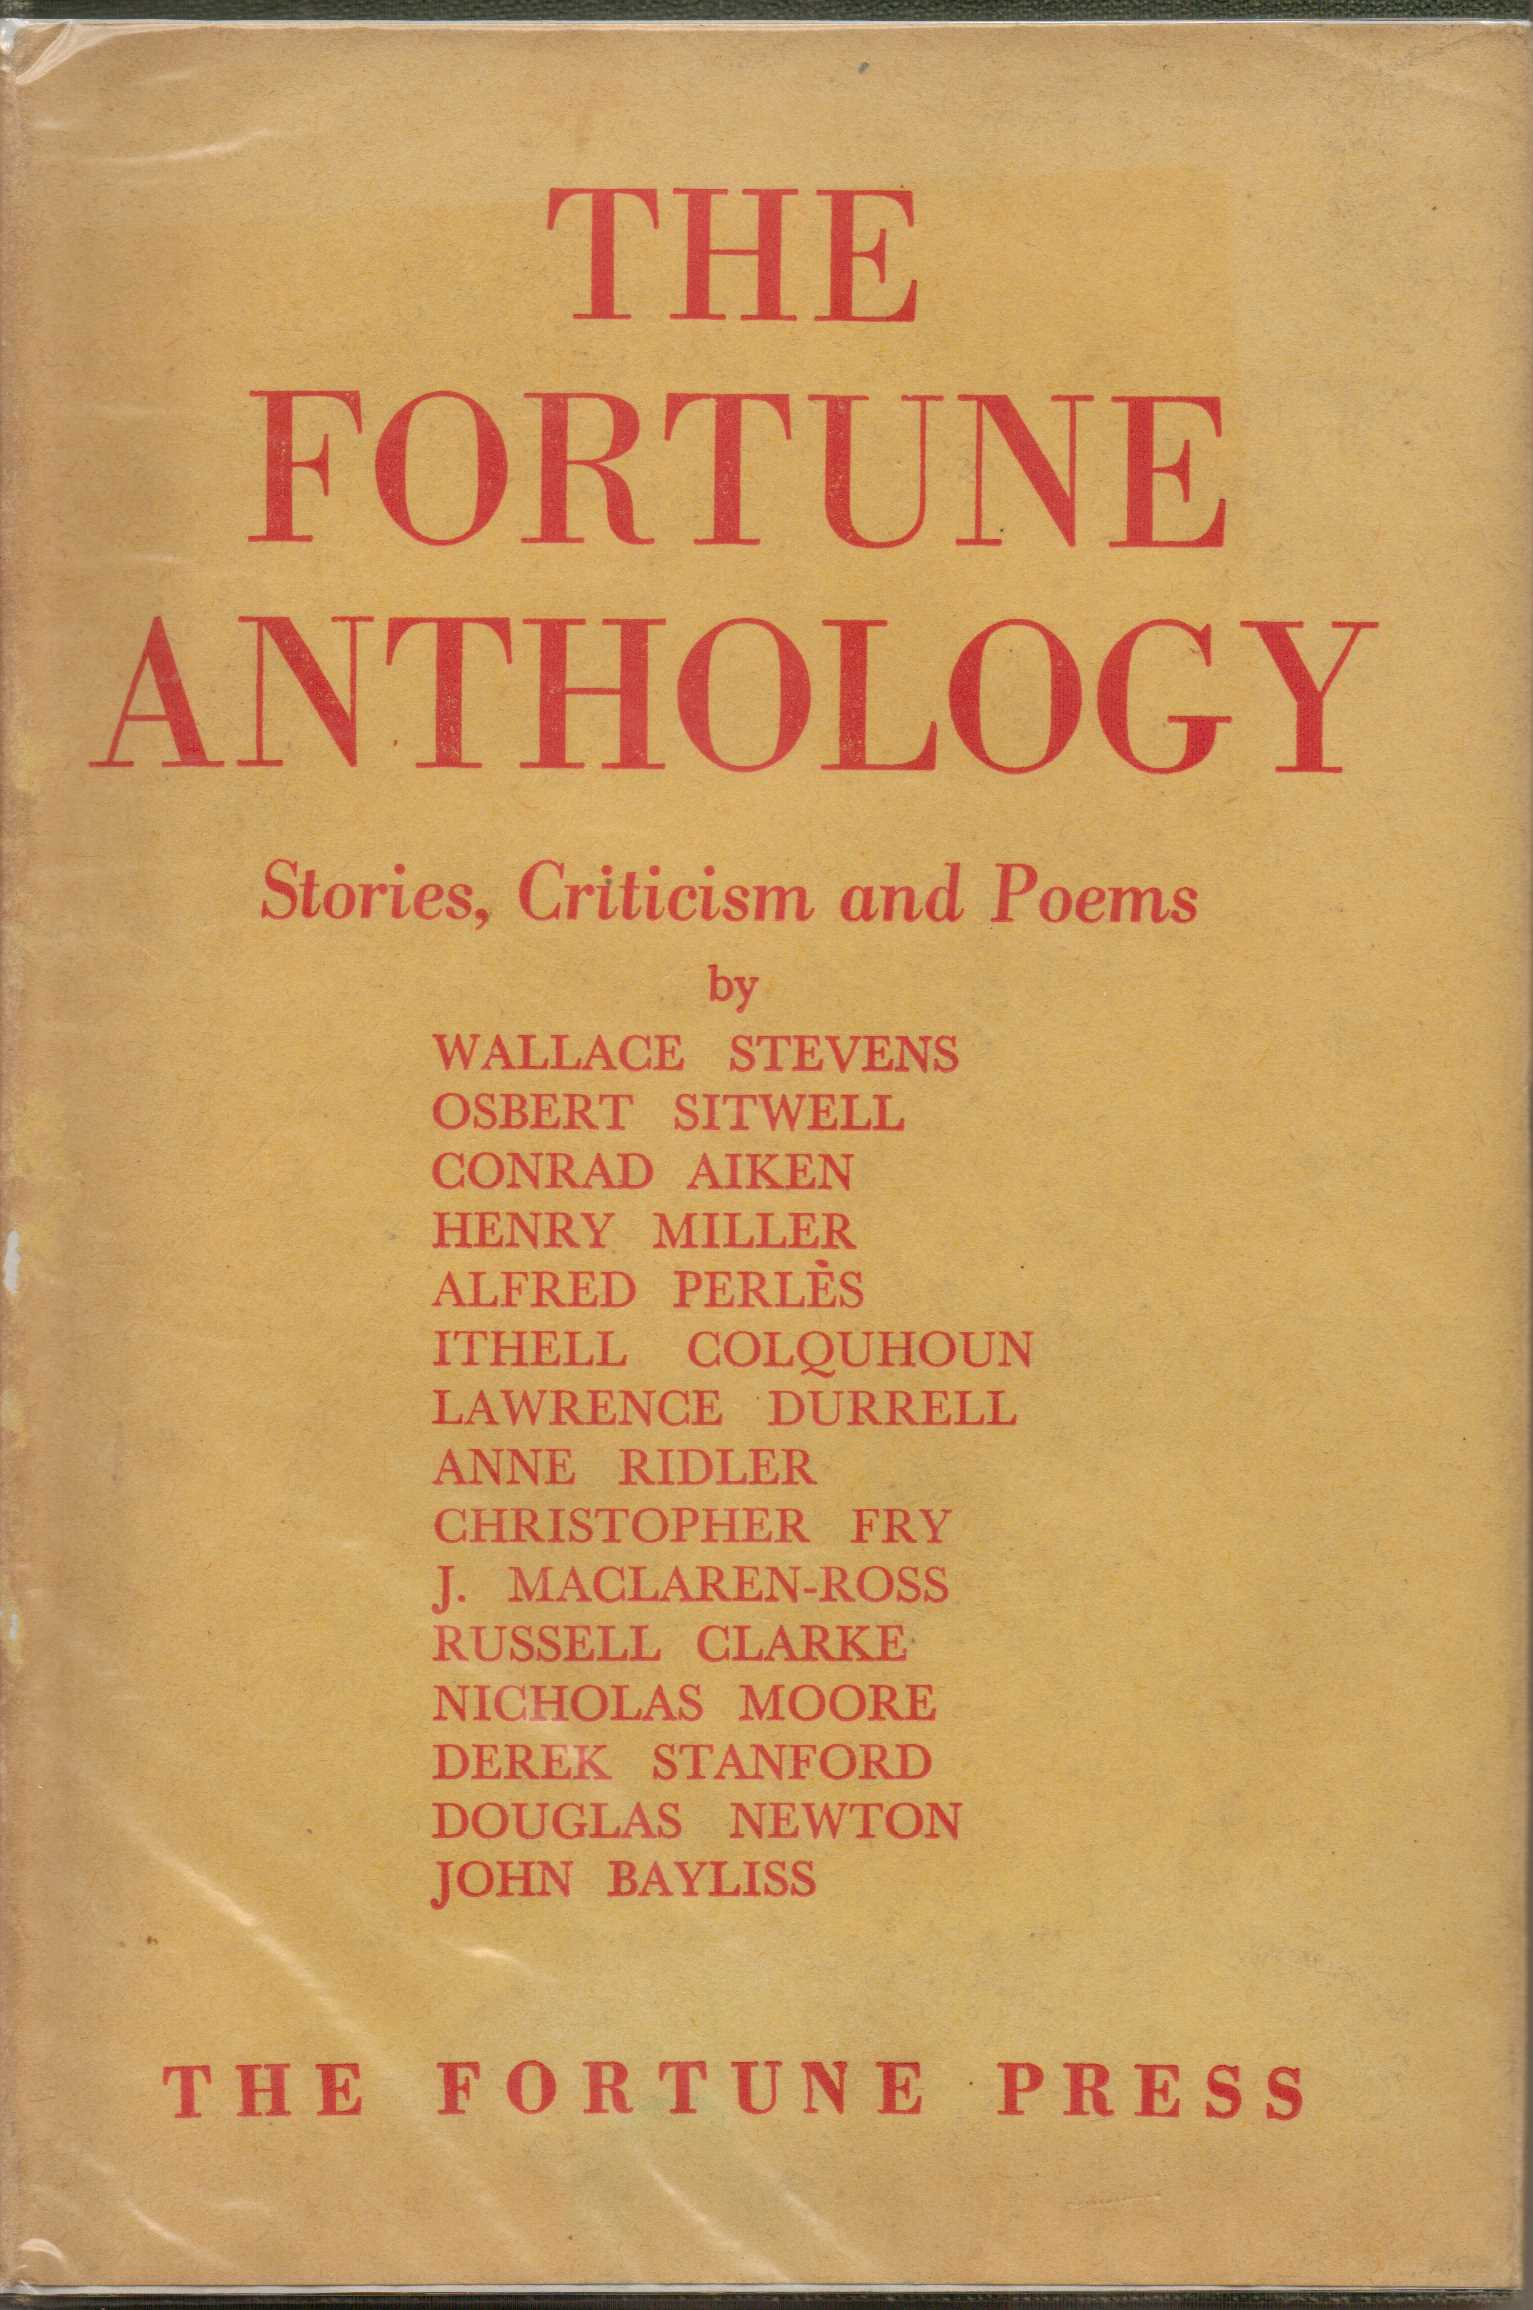 Image for The Fortune Anthology : Stories, Criticism and Poems